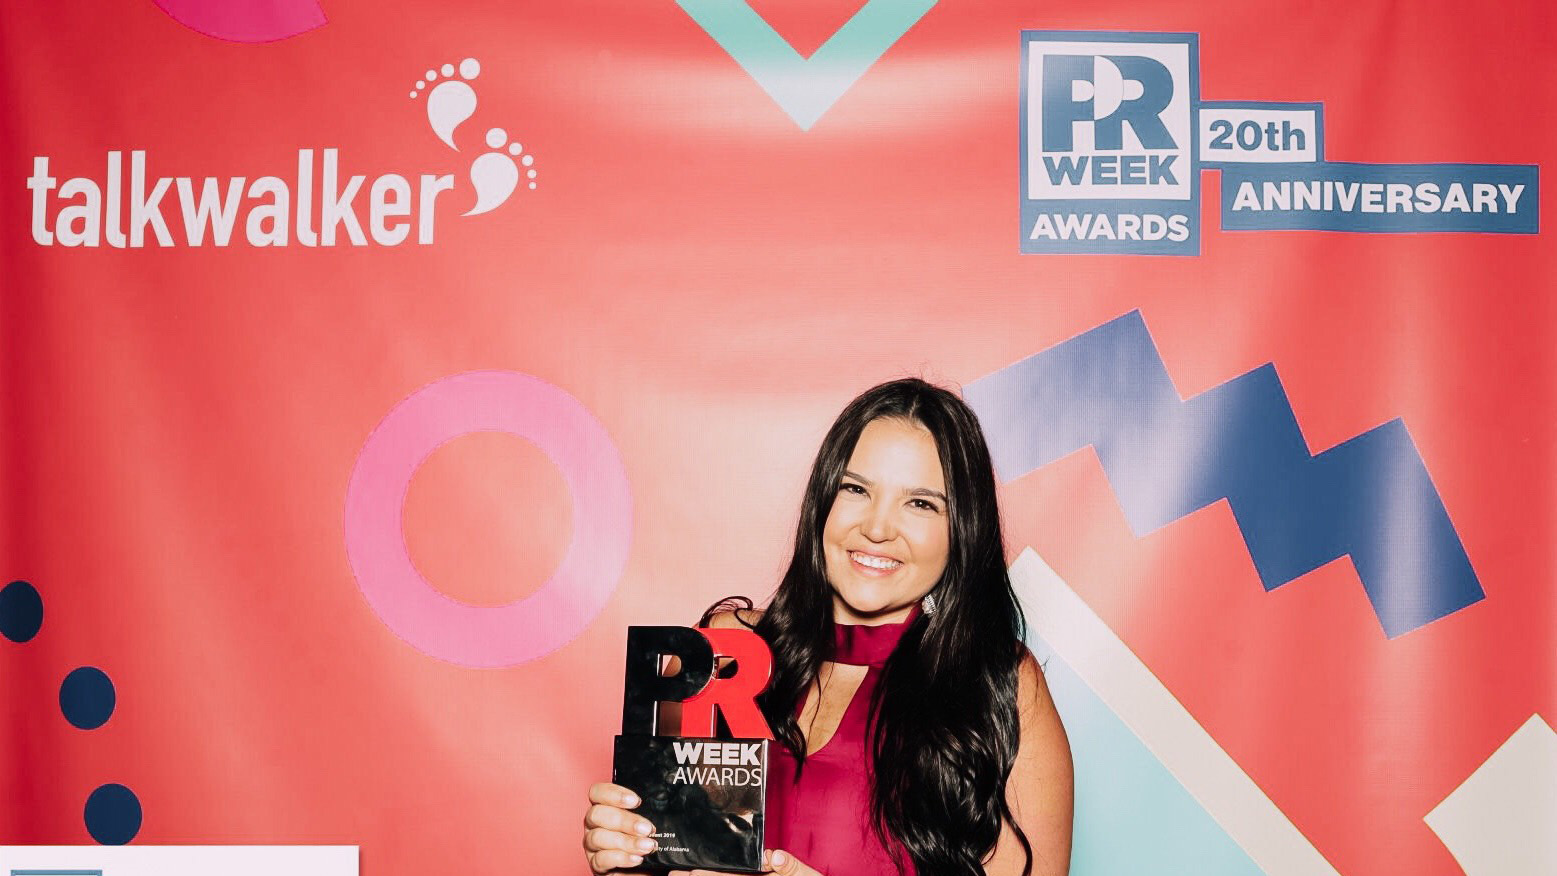 C&IS Senior Alana Doyle is the PRWeek PR Student of the Year